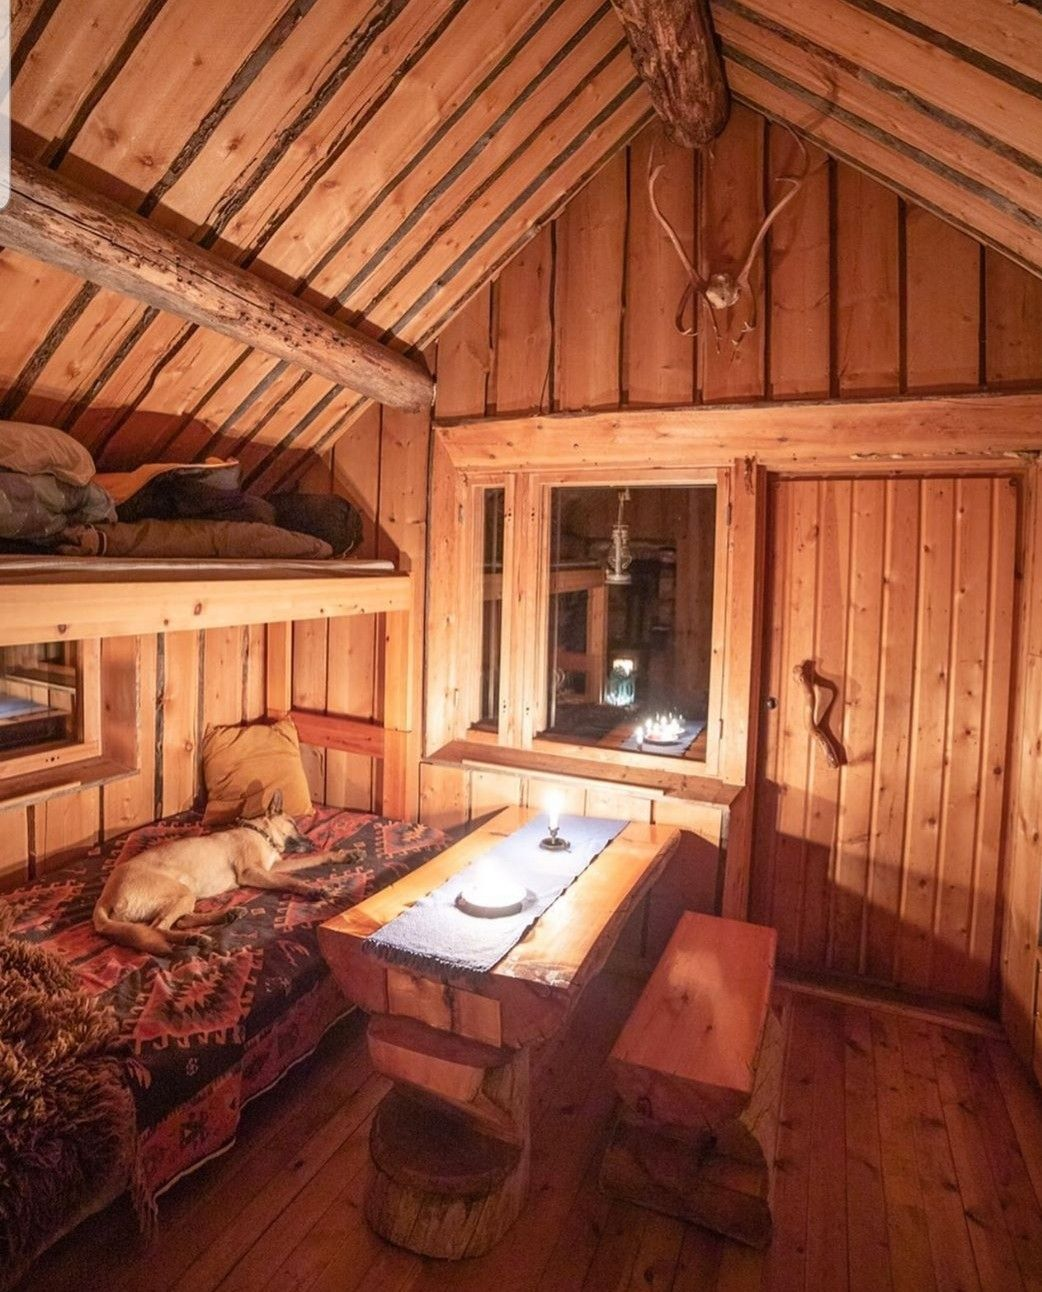 Pin By Joanne Zwart Ruimte Ontwerpe On A Northwoods Cabin Small Cabin Interiors Small Cabin Plans Small Cabin